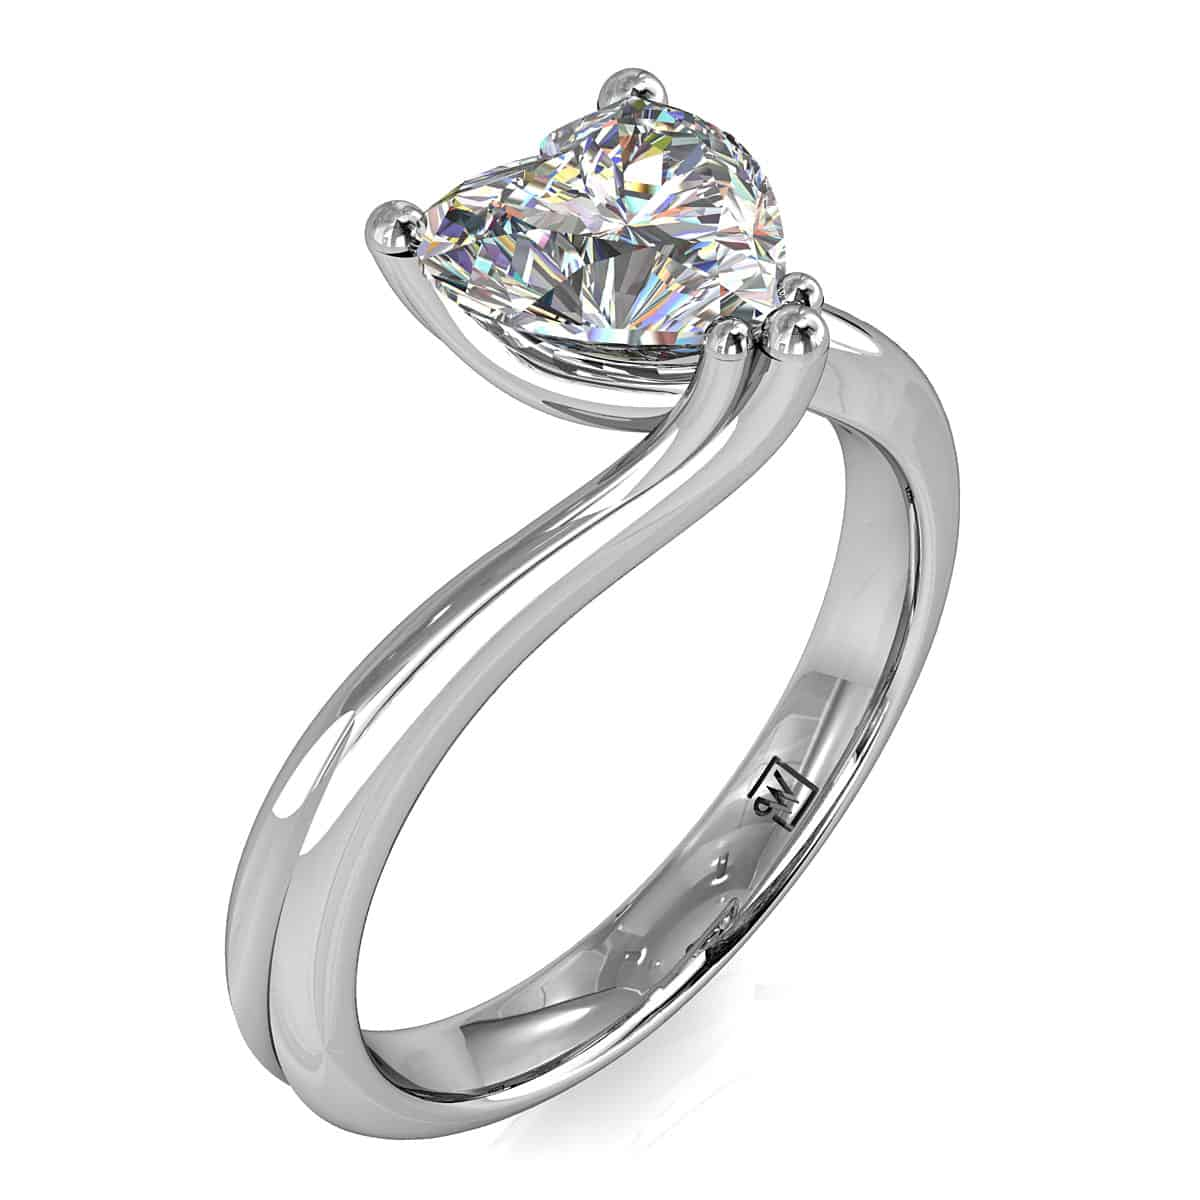 Heart Shape Solitaire Engagment Ring, Semi Bezel Set on a Plain Polished Band.g